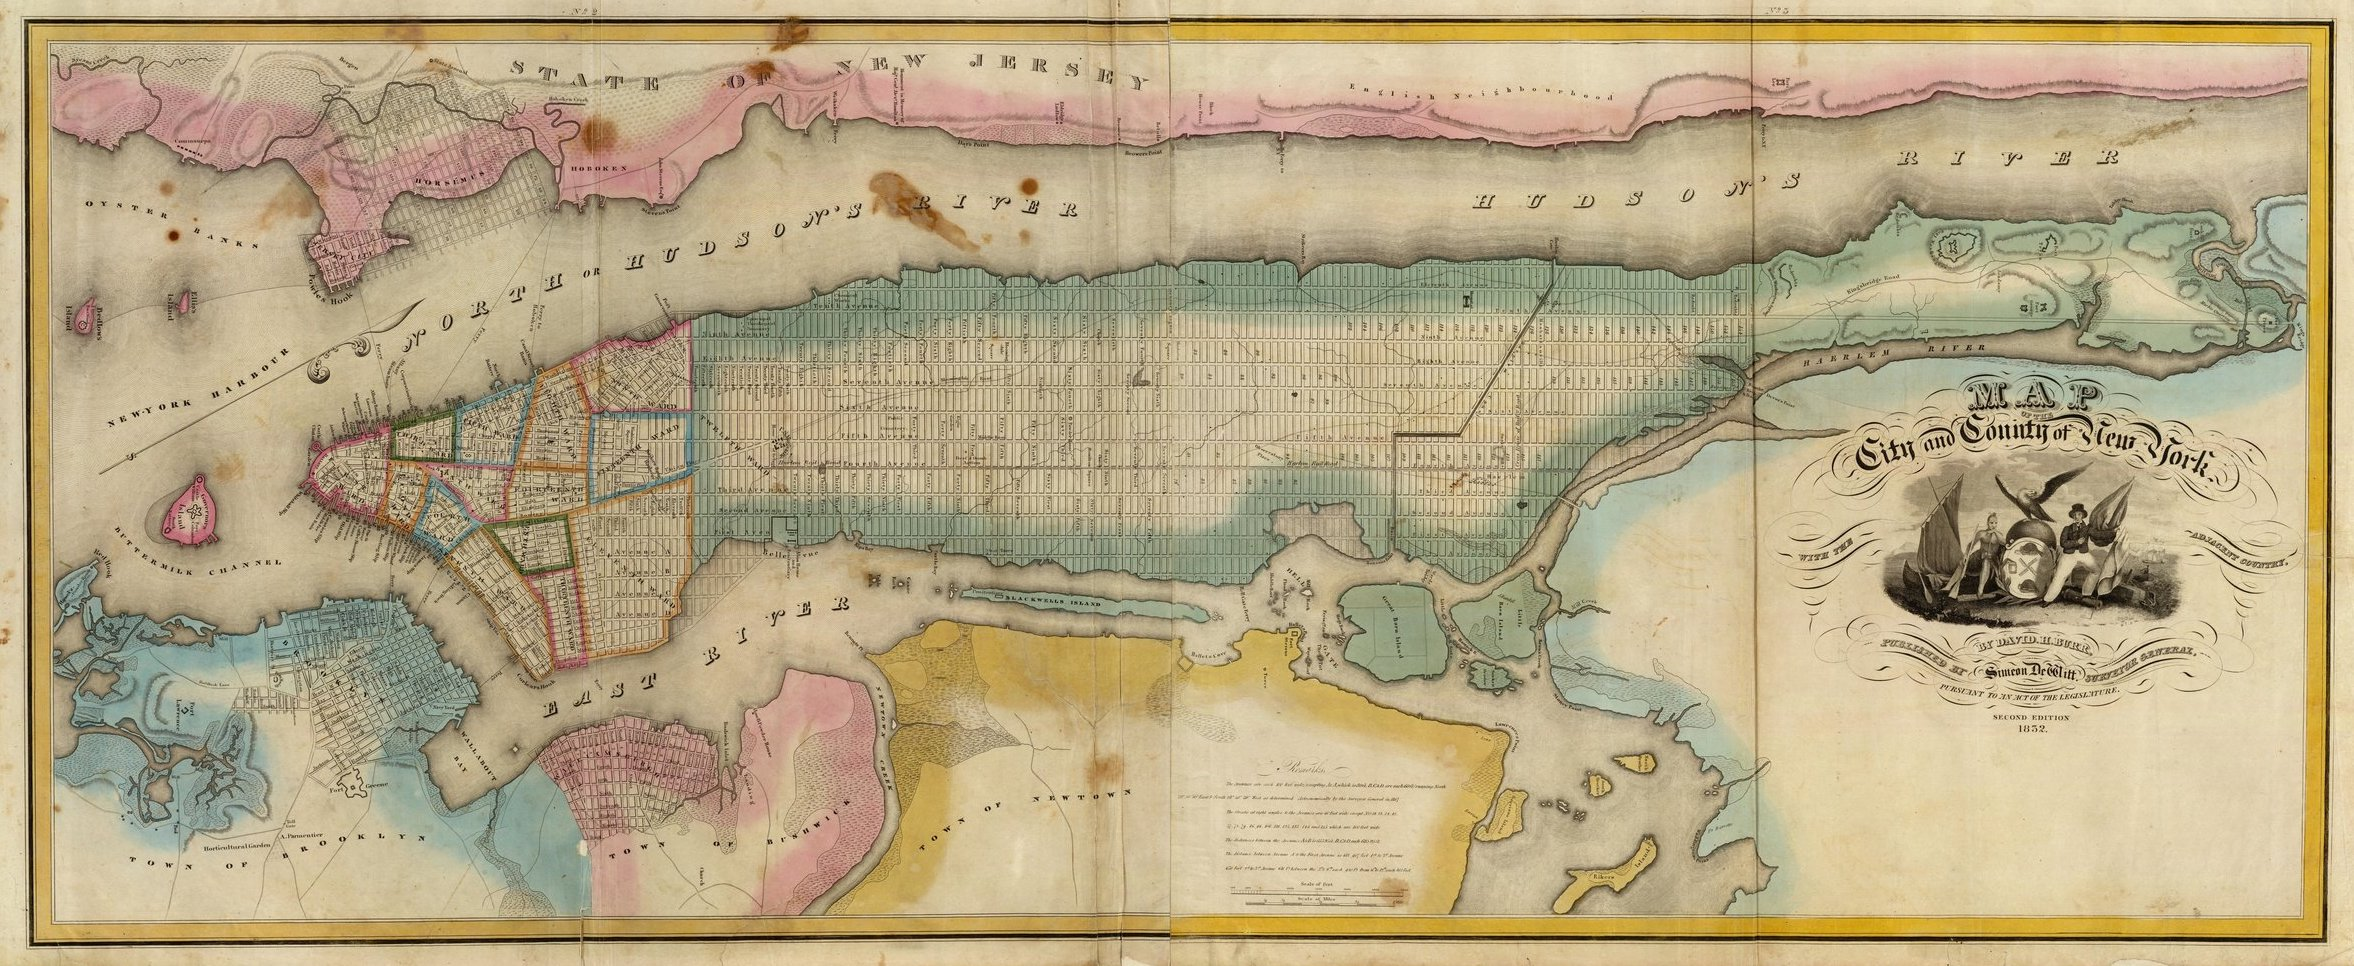 It's just a graphic of Printable Map of Manhattan in island